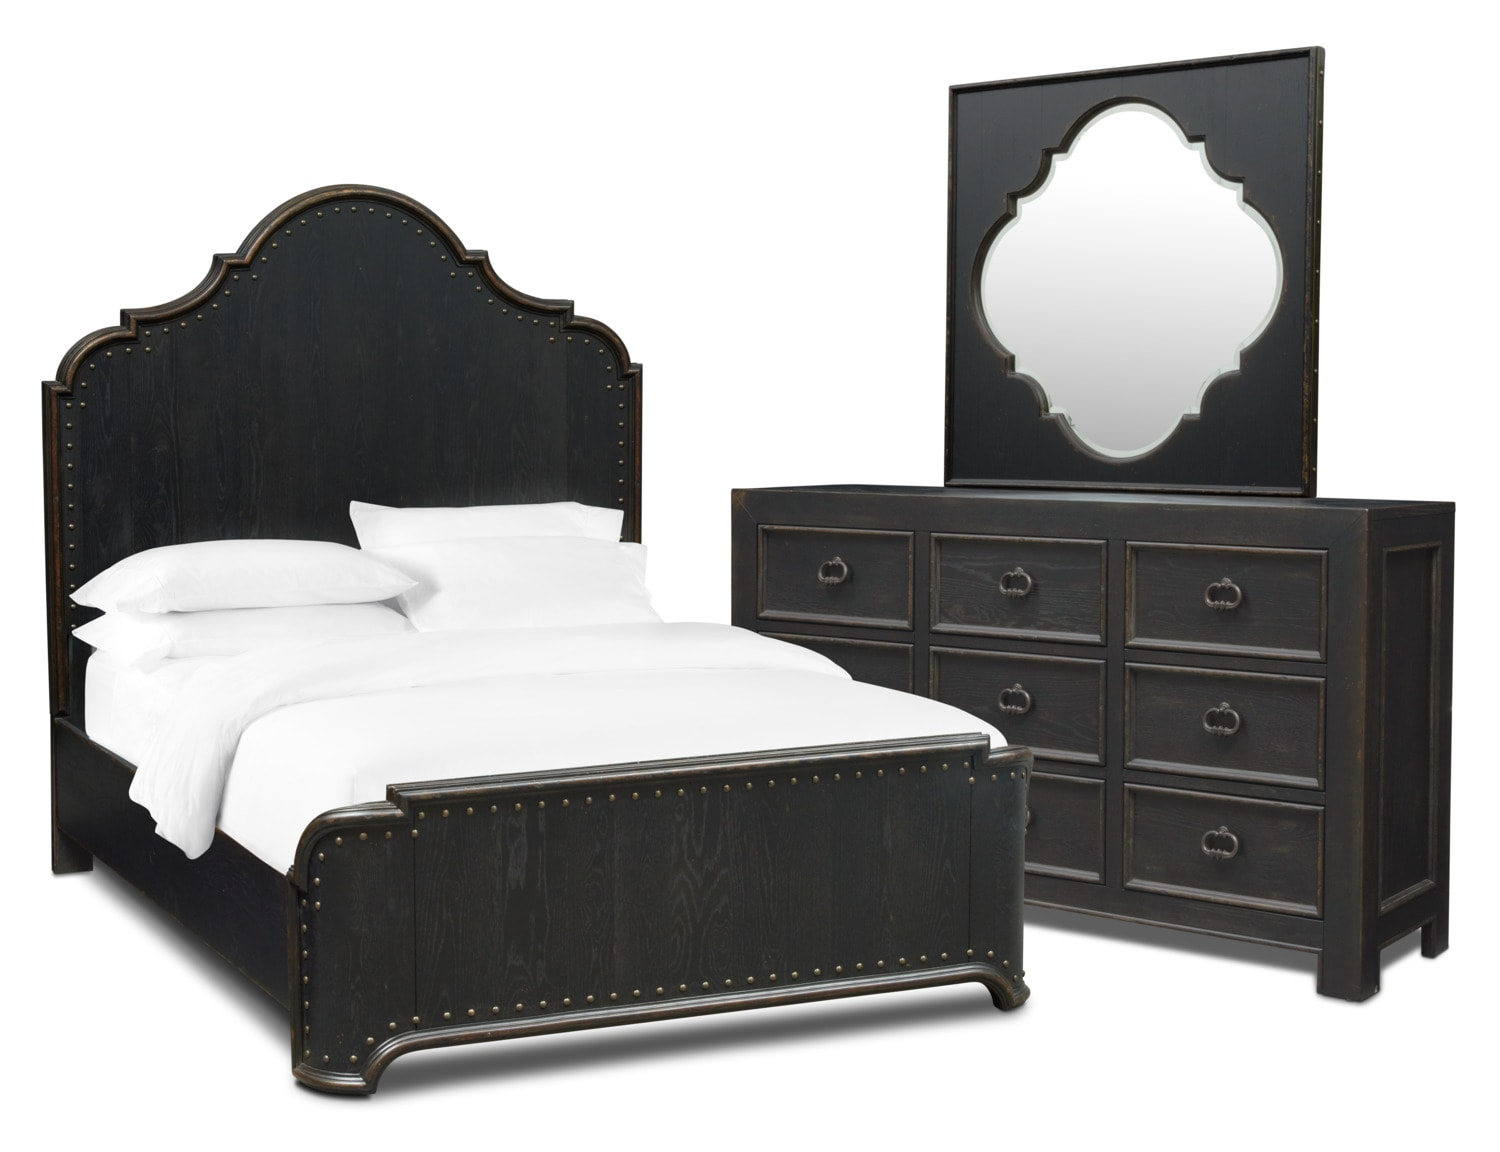 Bedroom Furniture - Lennon 5-Piece Bedroom Set with Dresser and Mirror